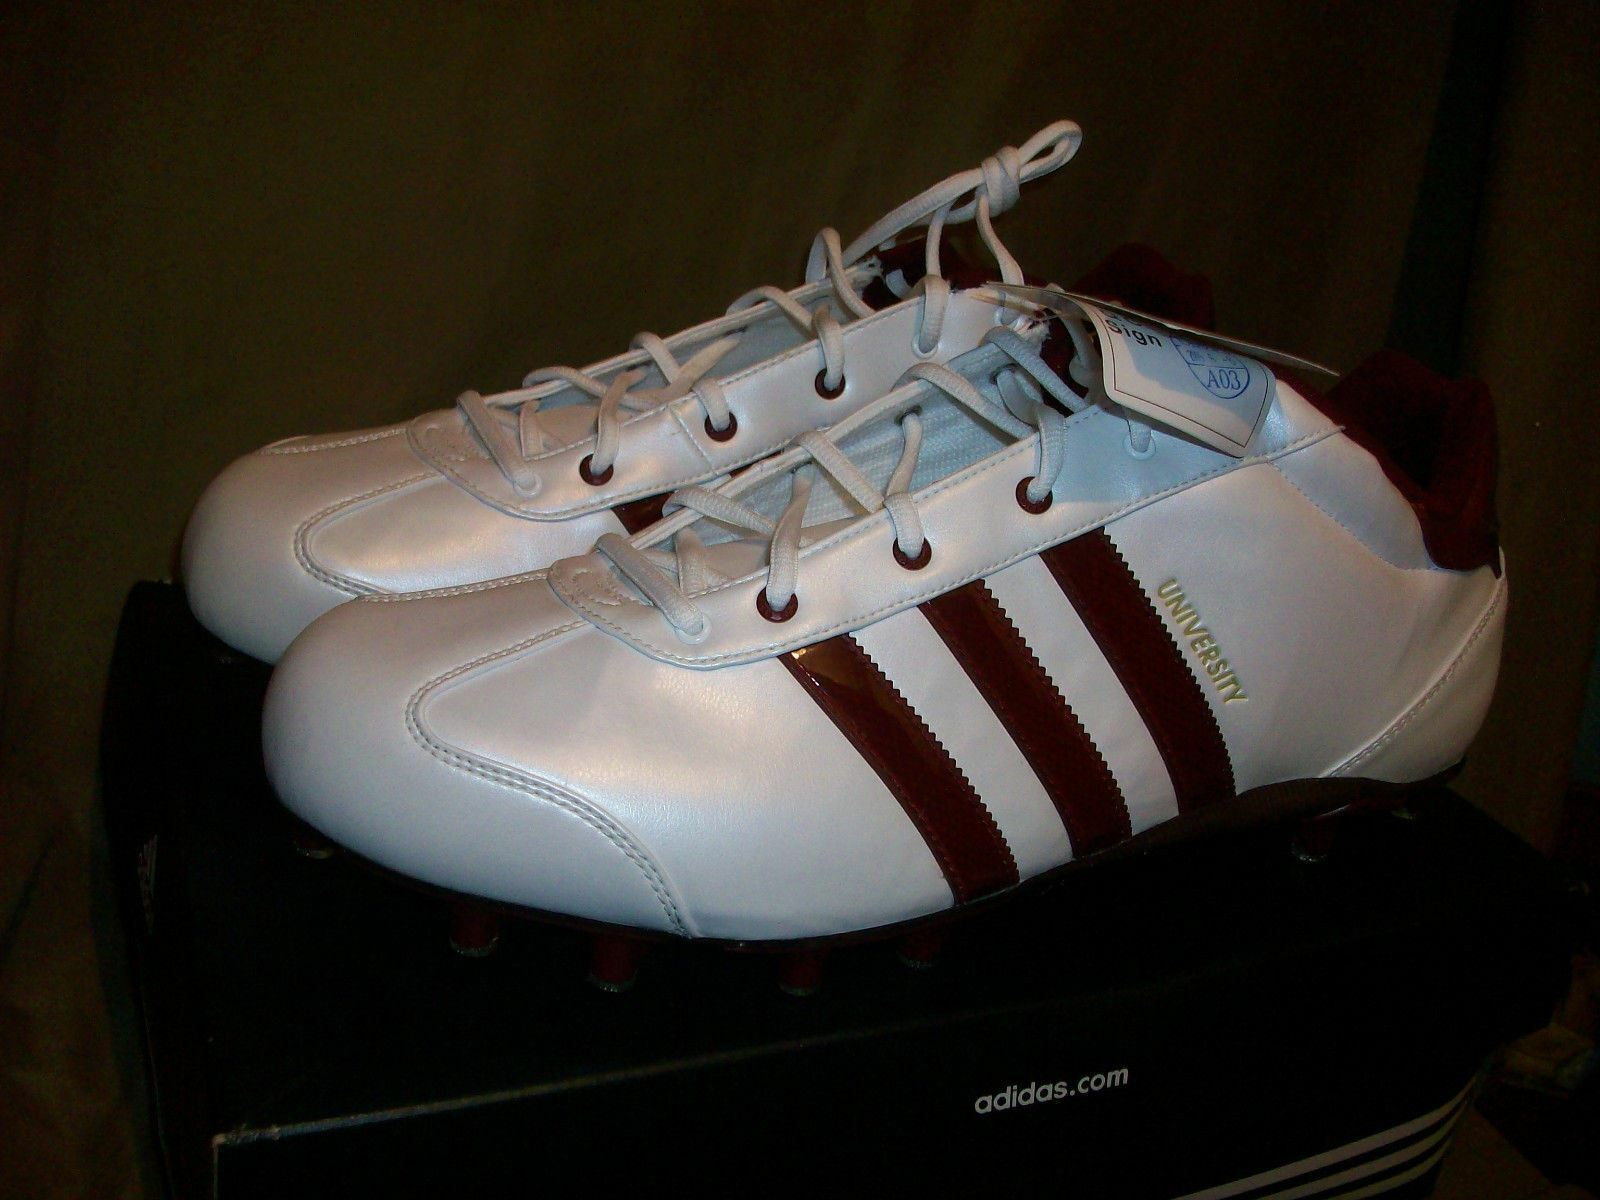 ADIDAS UNIVERSITY LE FOOTBALL CLEATS MENS SIZE 14.5 WHITE BURGUNDY